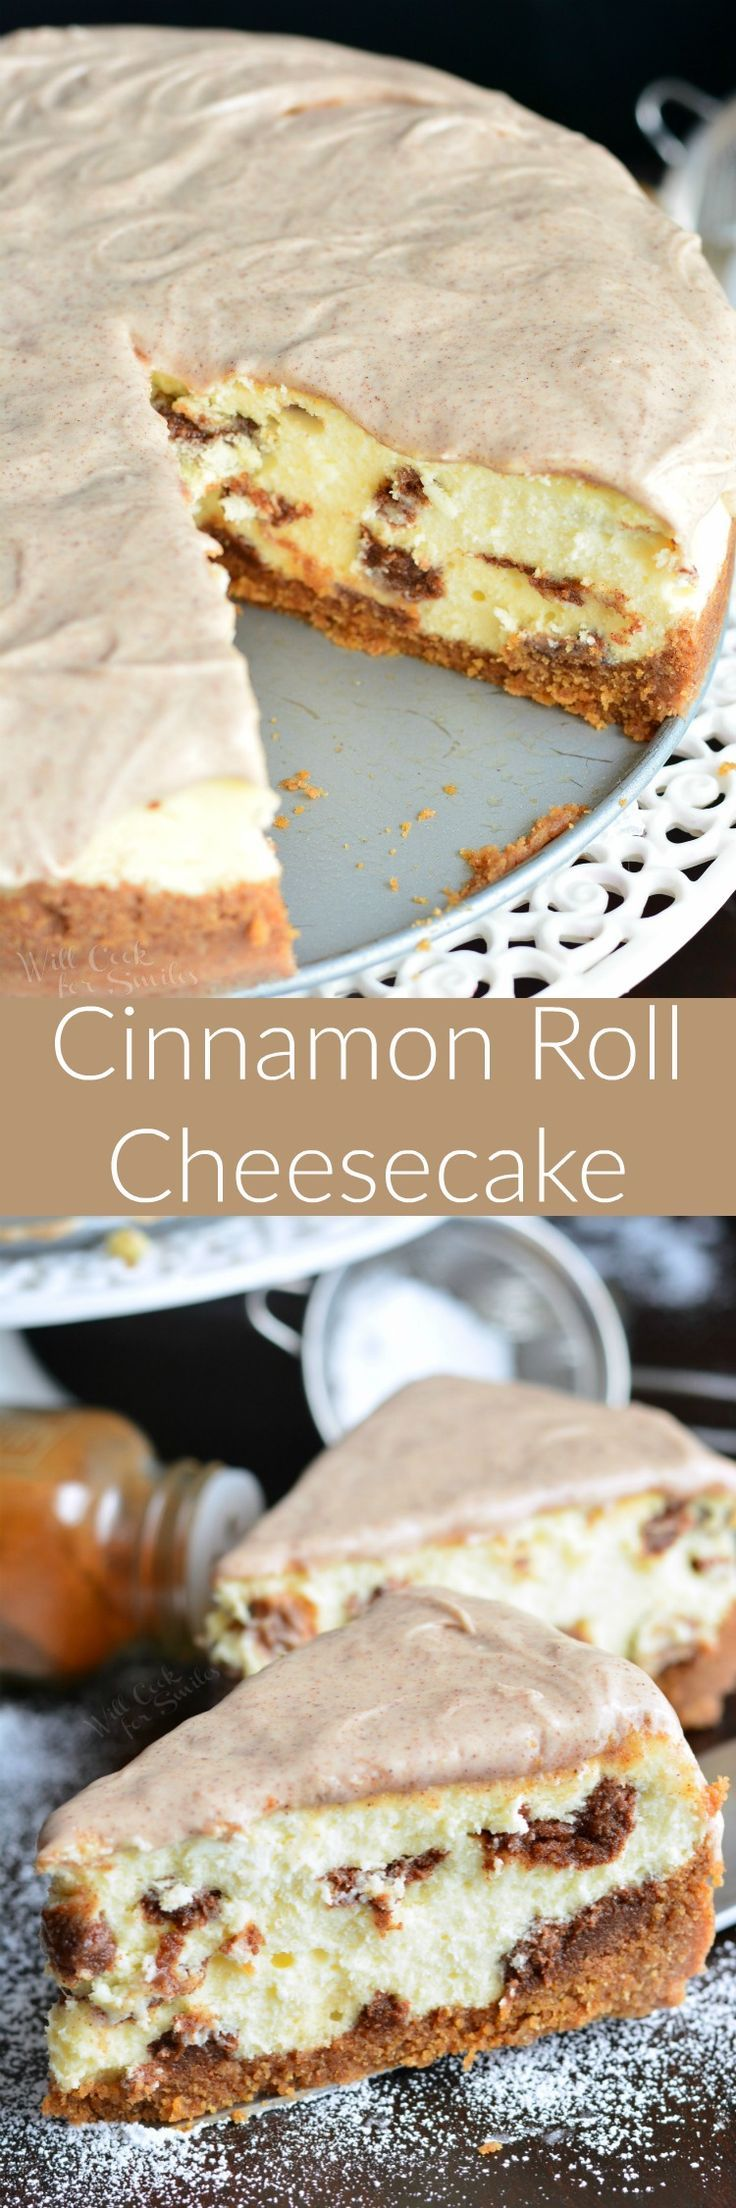 Cinnamon Roll Cheesecake. Creamy, smooth, silky cheesecake made to taste just like cinnamon buns. This cheesecake has a cinnamon flavored crust, smooth cheesecake filling, bit of cinnamon filling throughout, and cinnamon icing on top.